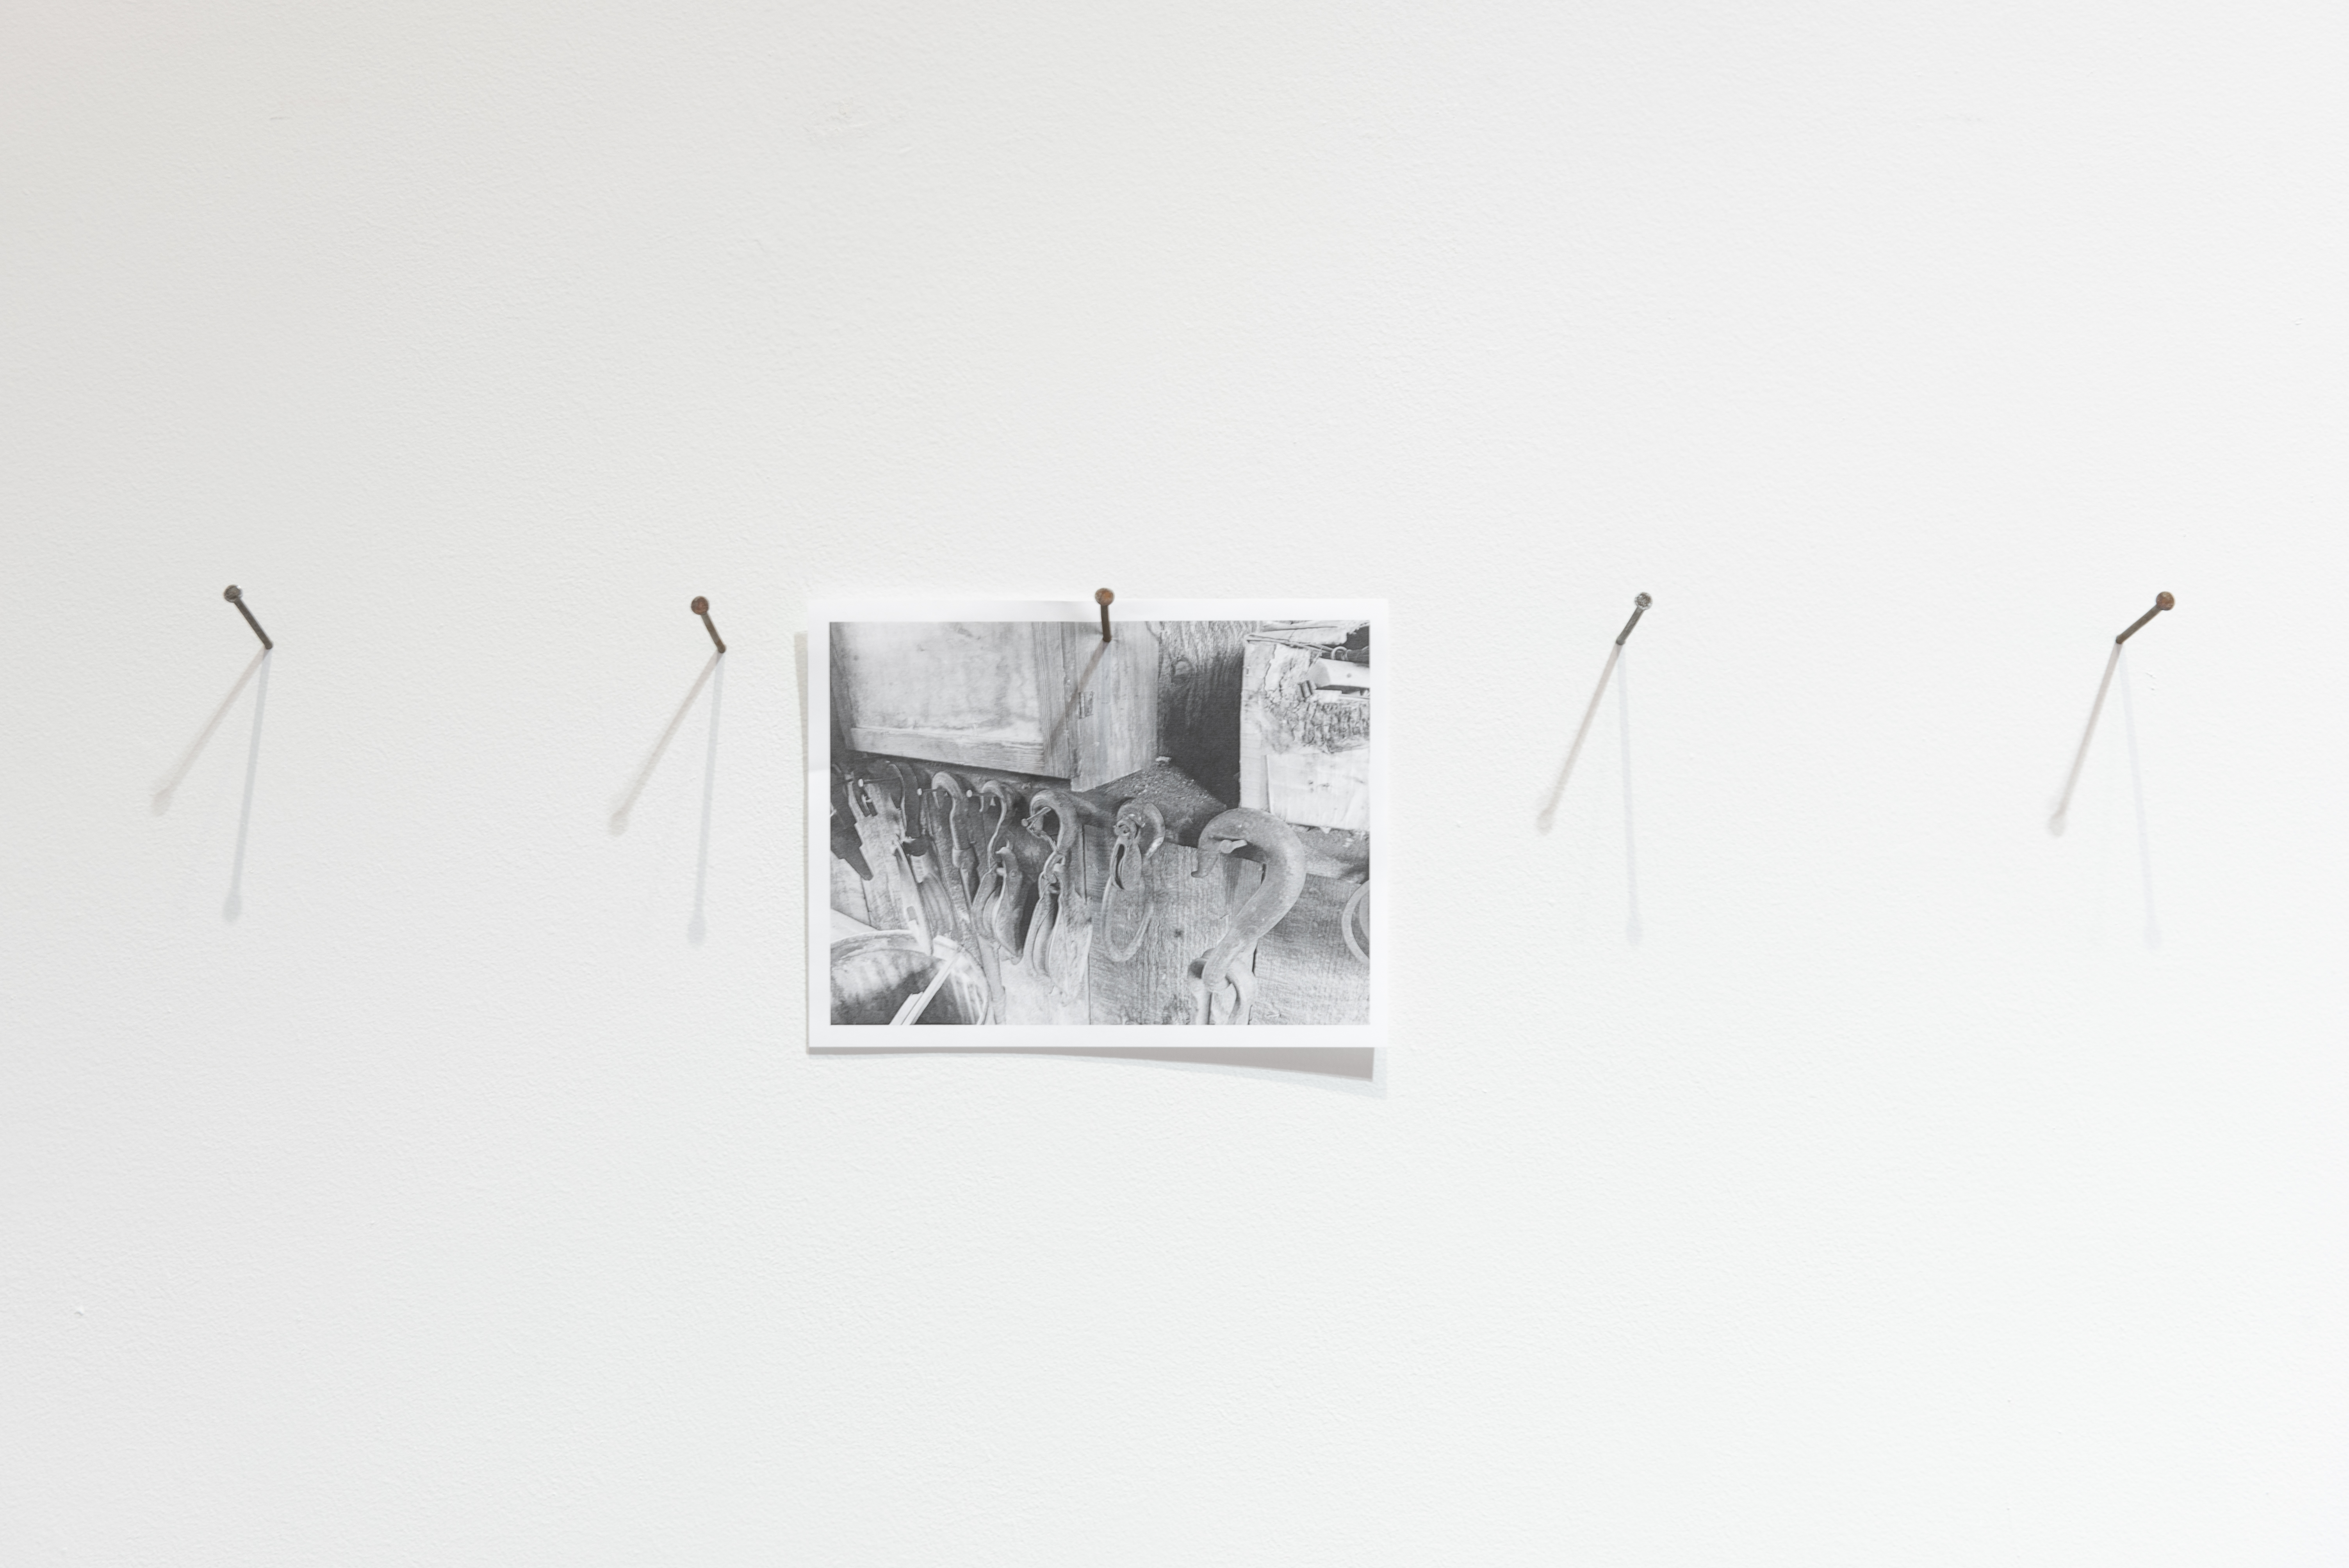 Image of Untitled 2 artwork installation with black and white photo nailed to the gallery wall.